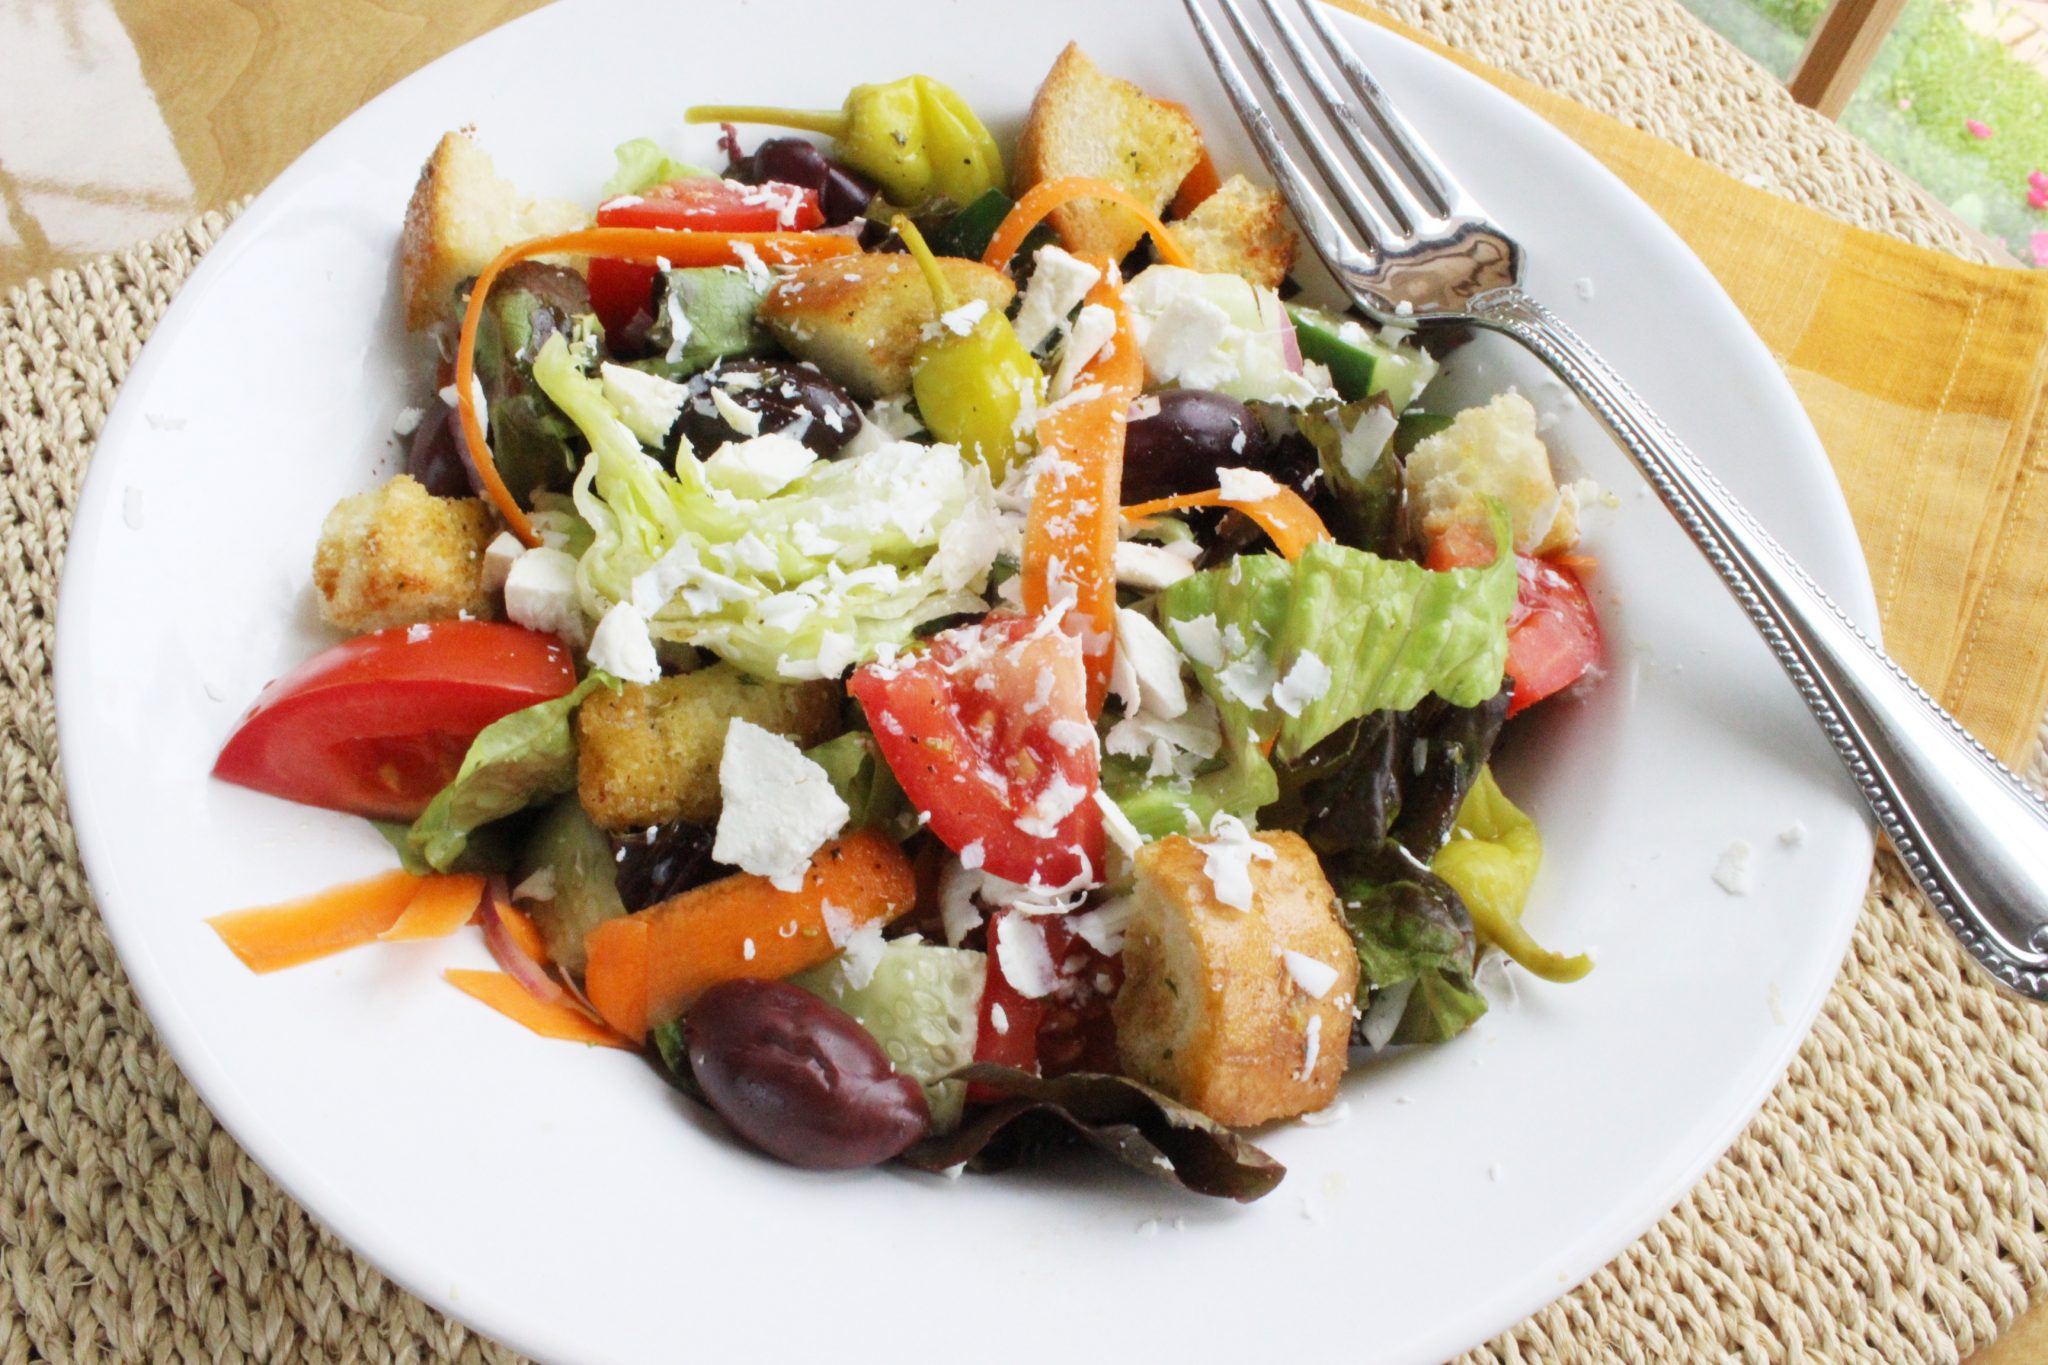 Classic Italian Salad With Red Wine Vinegar Olive Oil Dressing